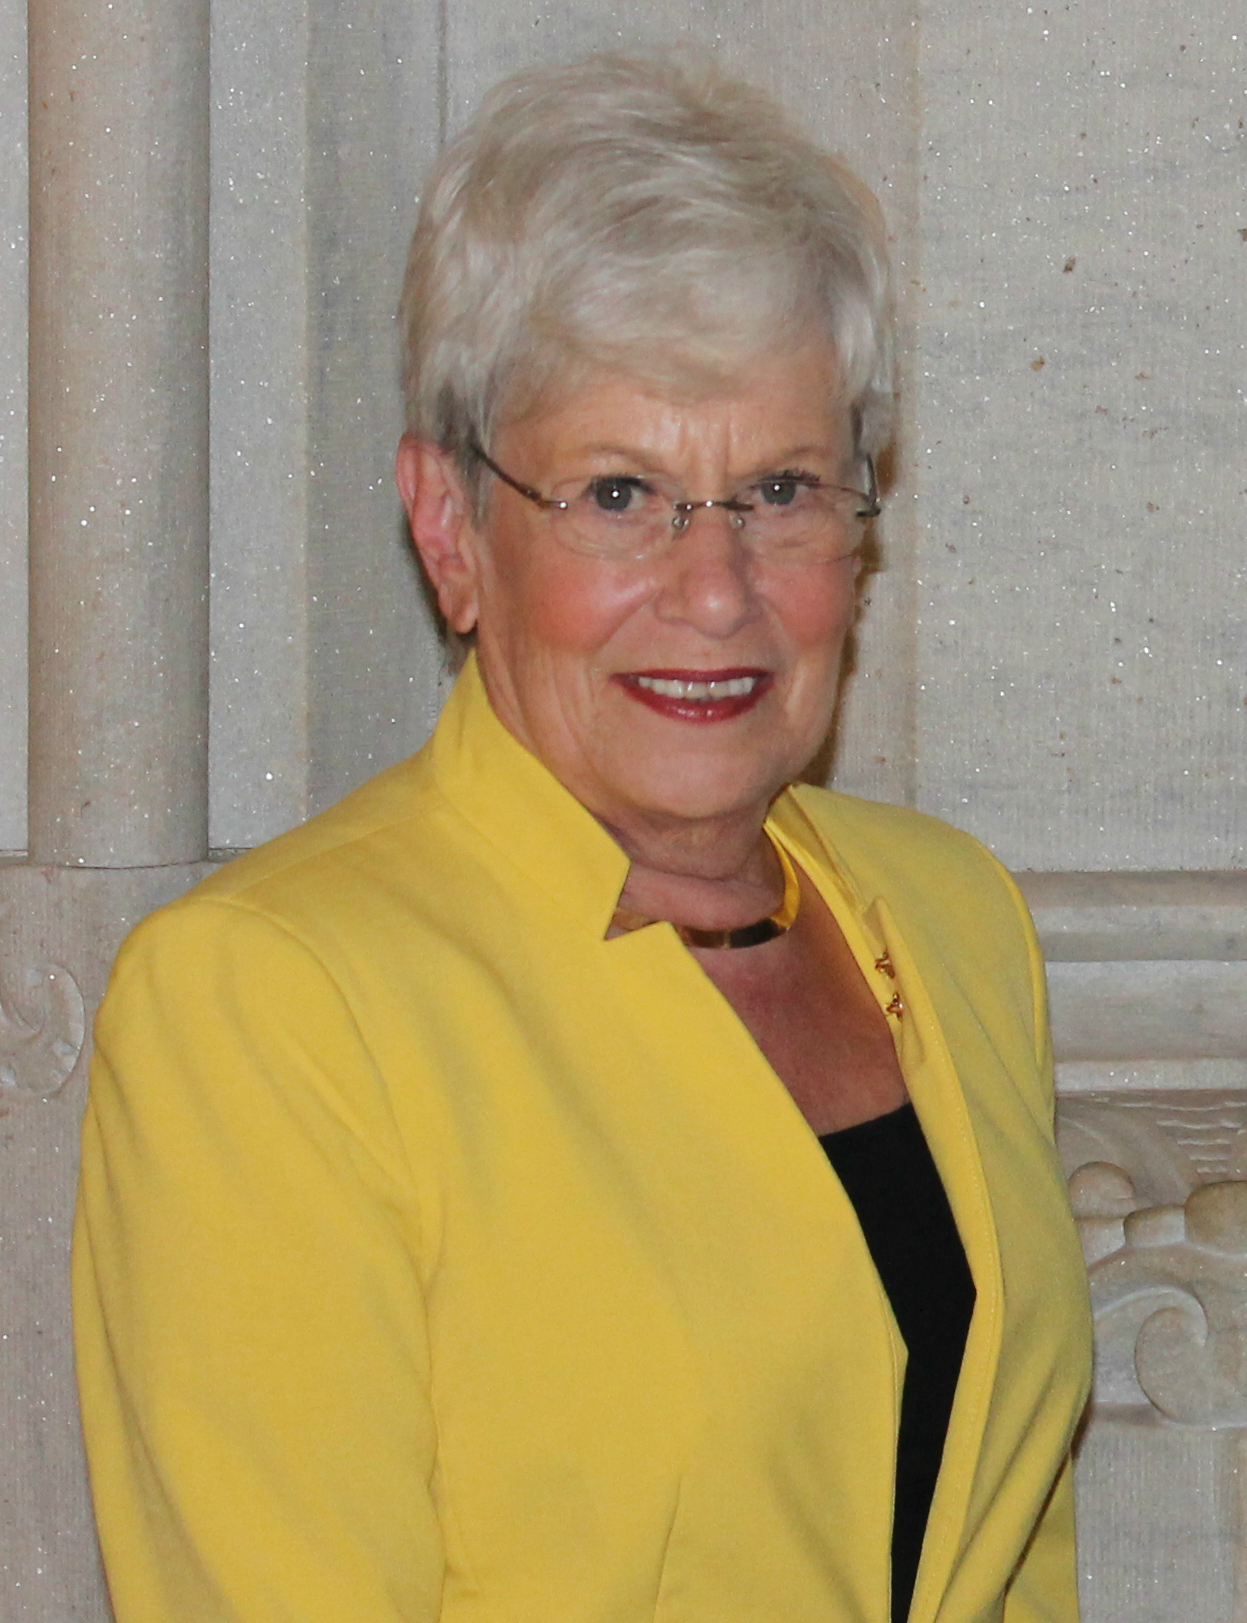 Lt. Governor Nancy Wyman Headshot